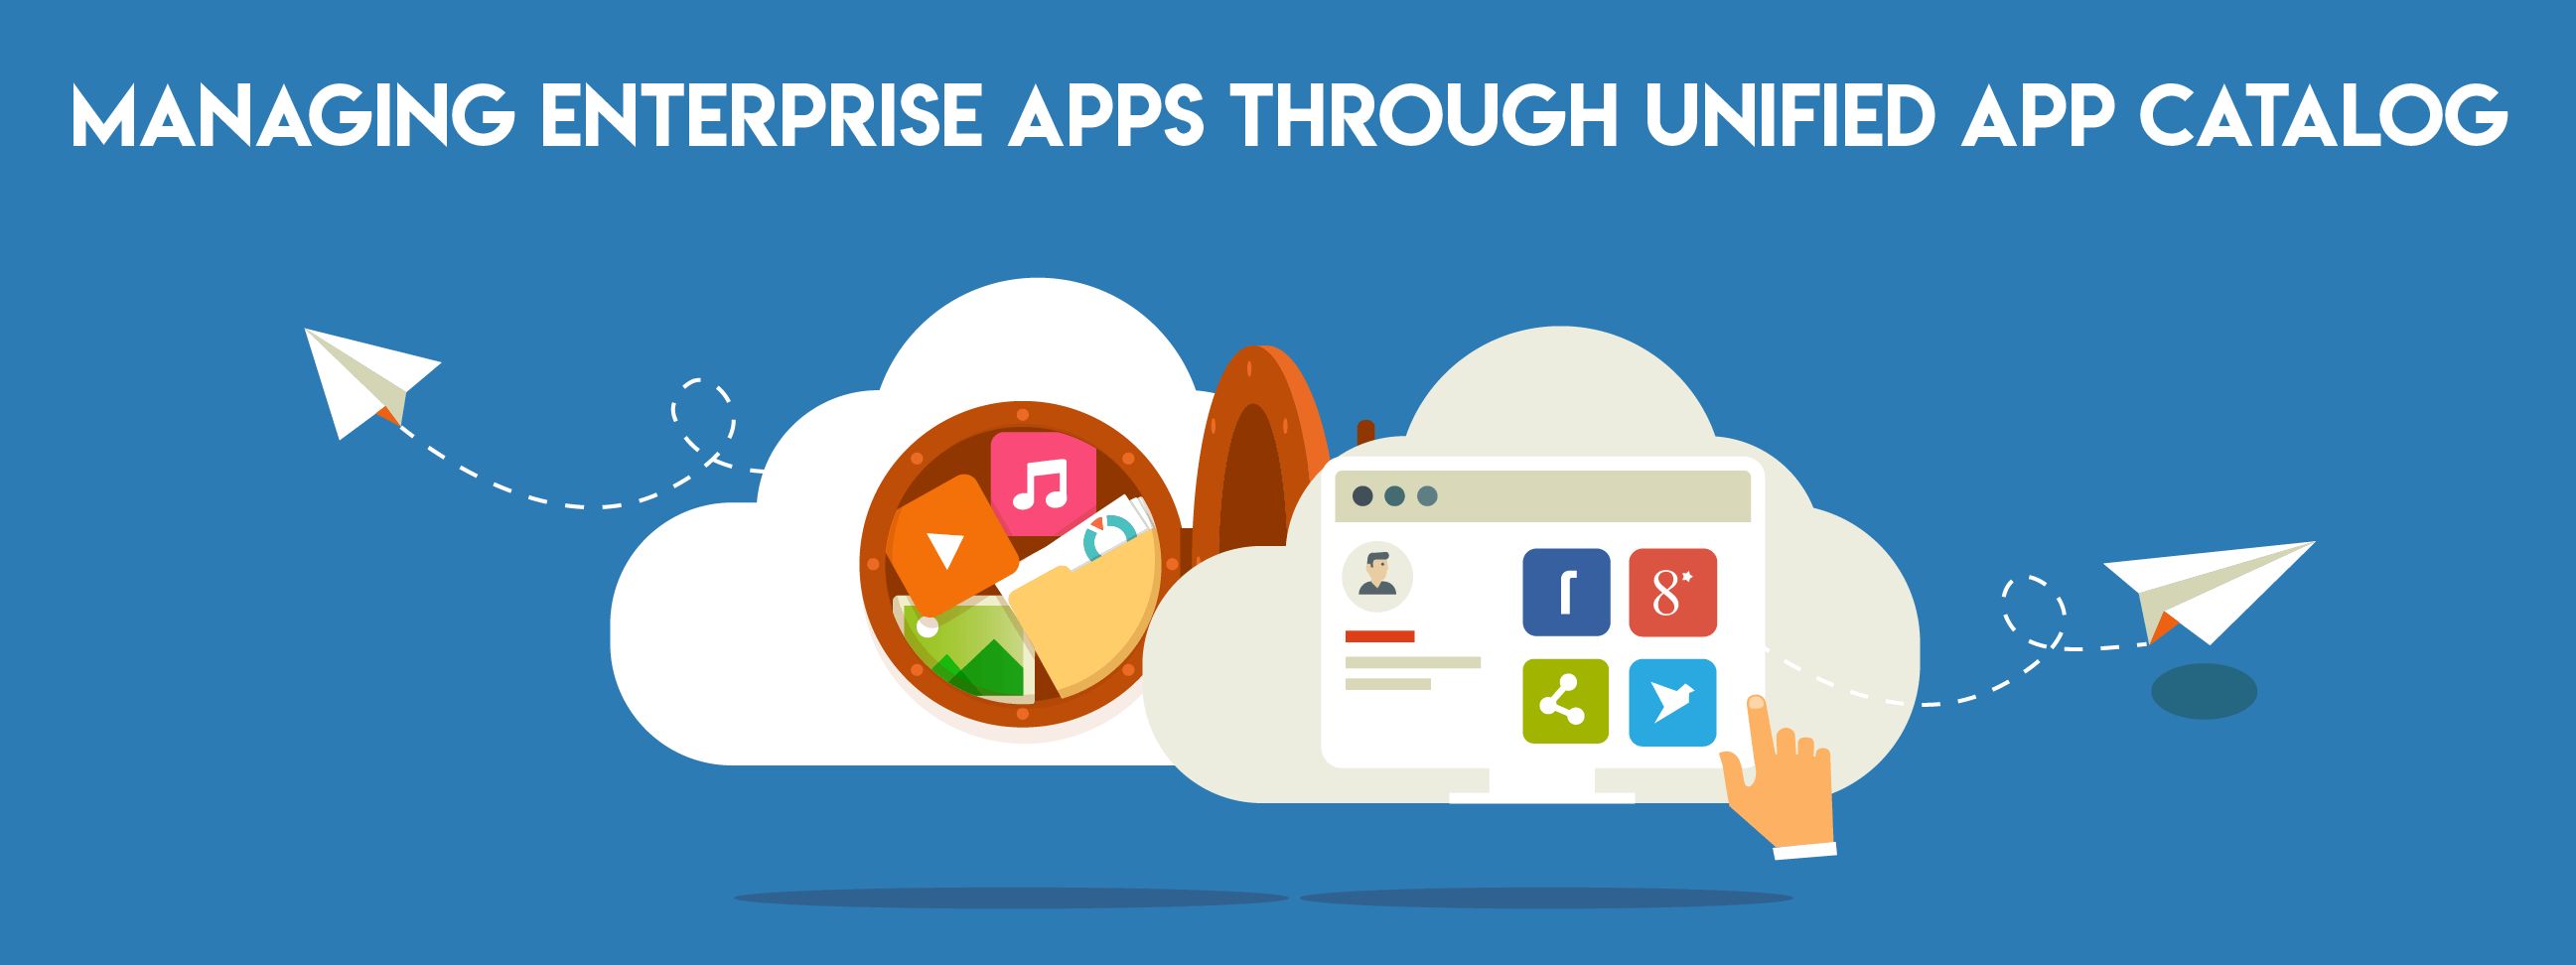 Managing Enterprise Apps through Unified App Catalog